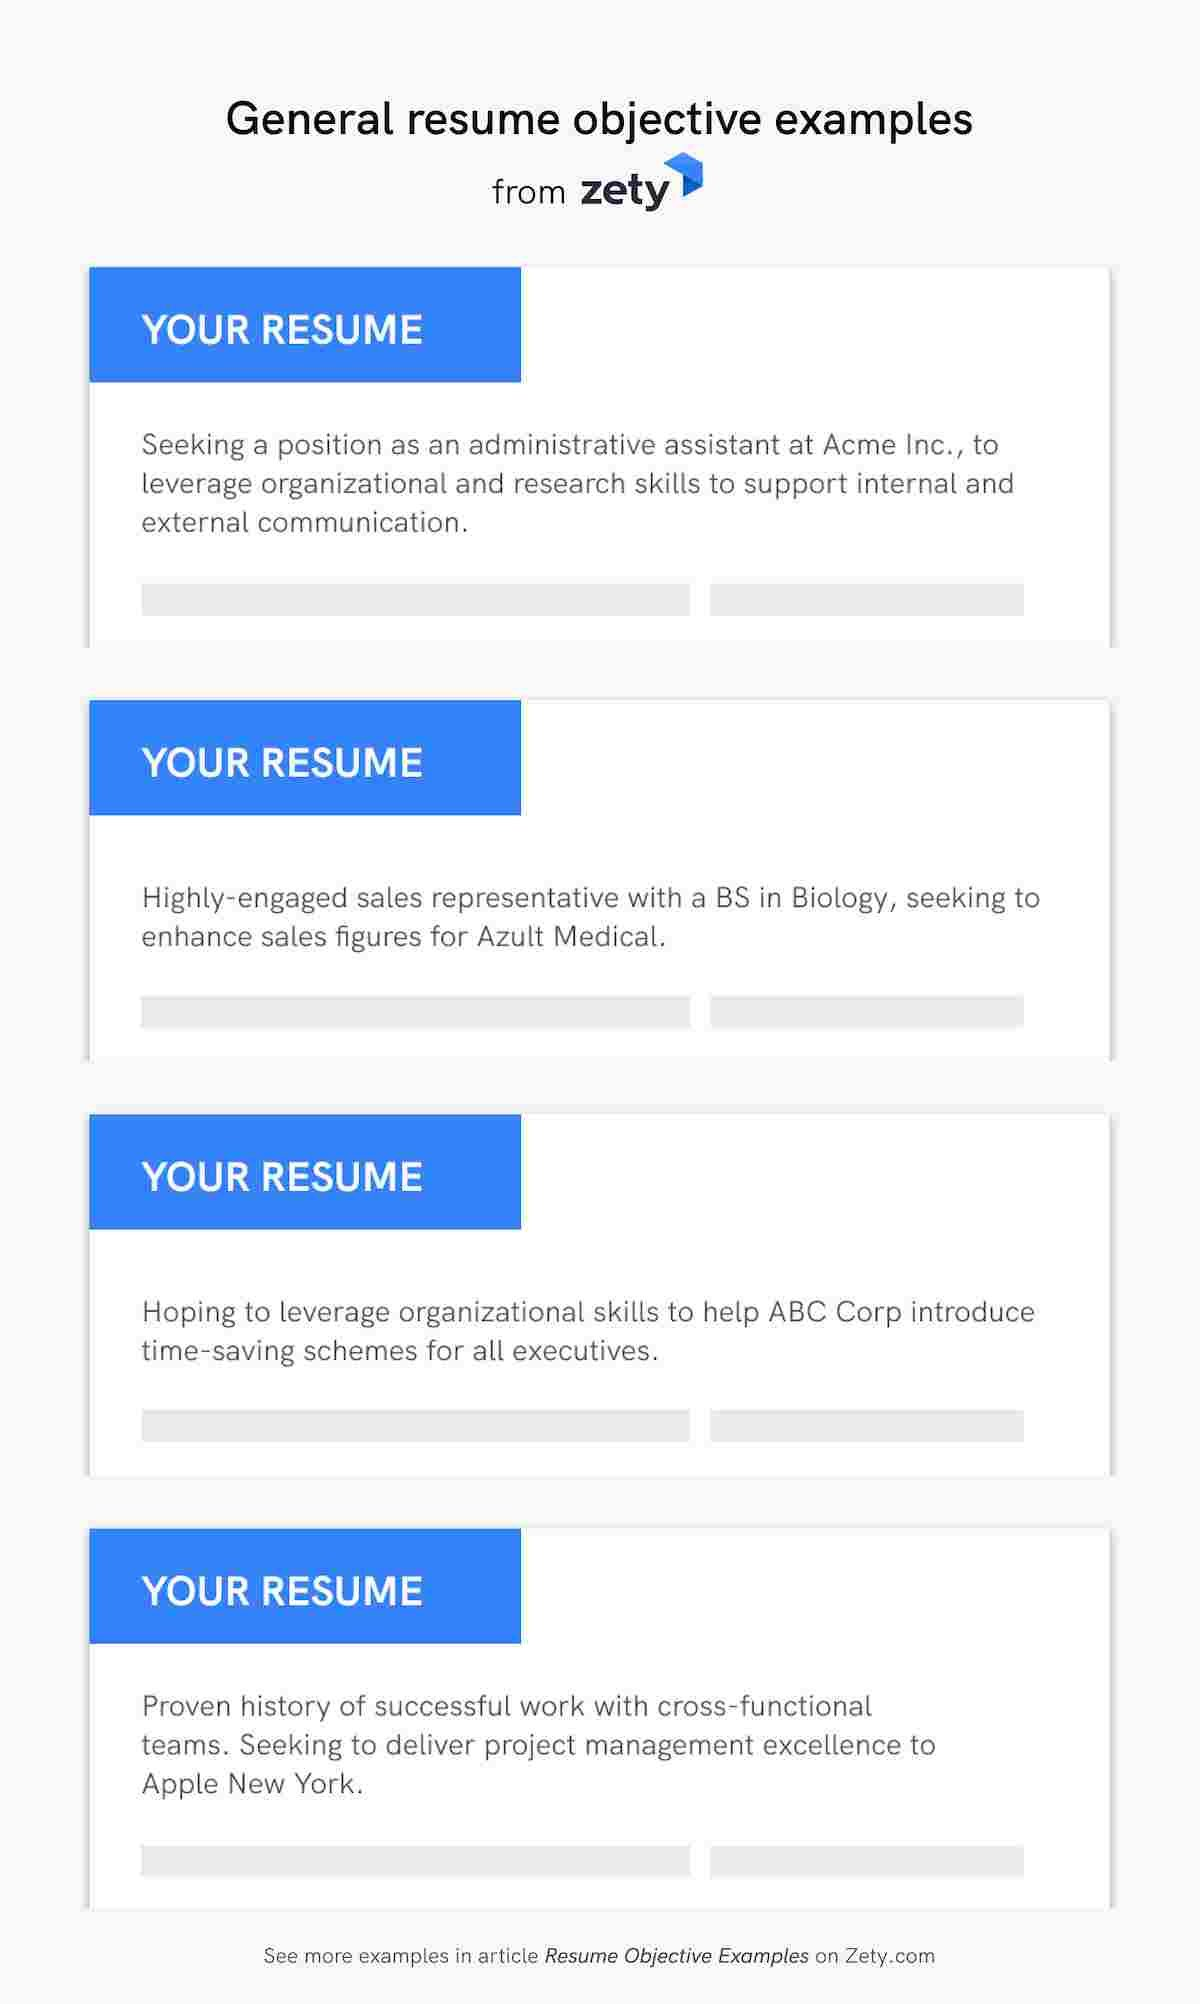 resume objective examples career objectives for all jobs good first job general iot Resume Good Objective For Resume For First Job